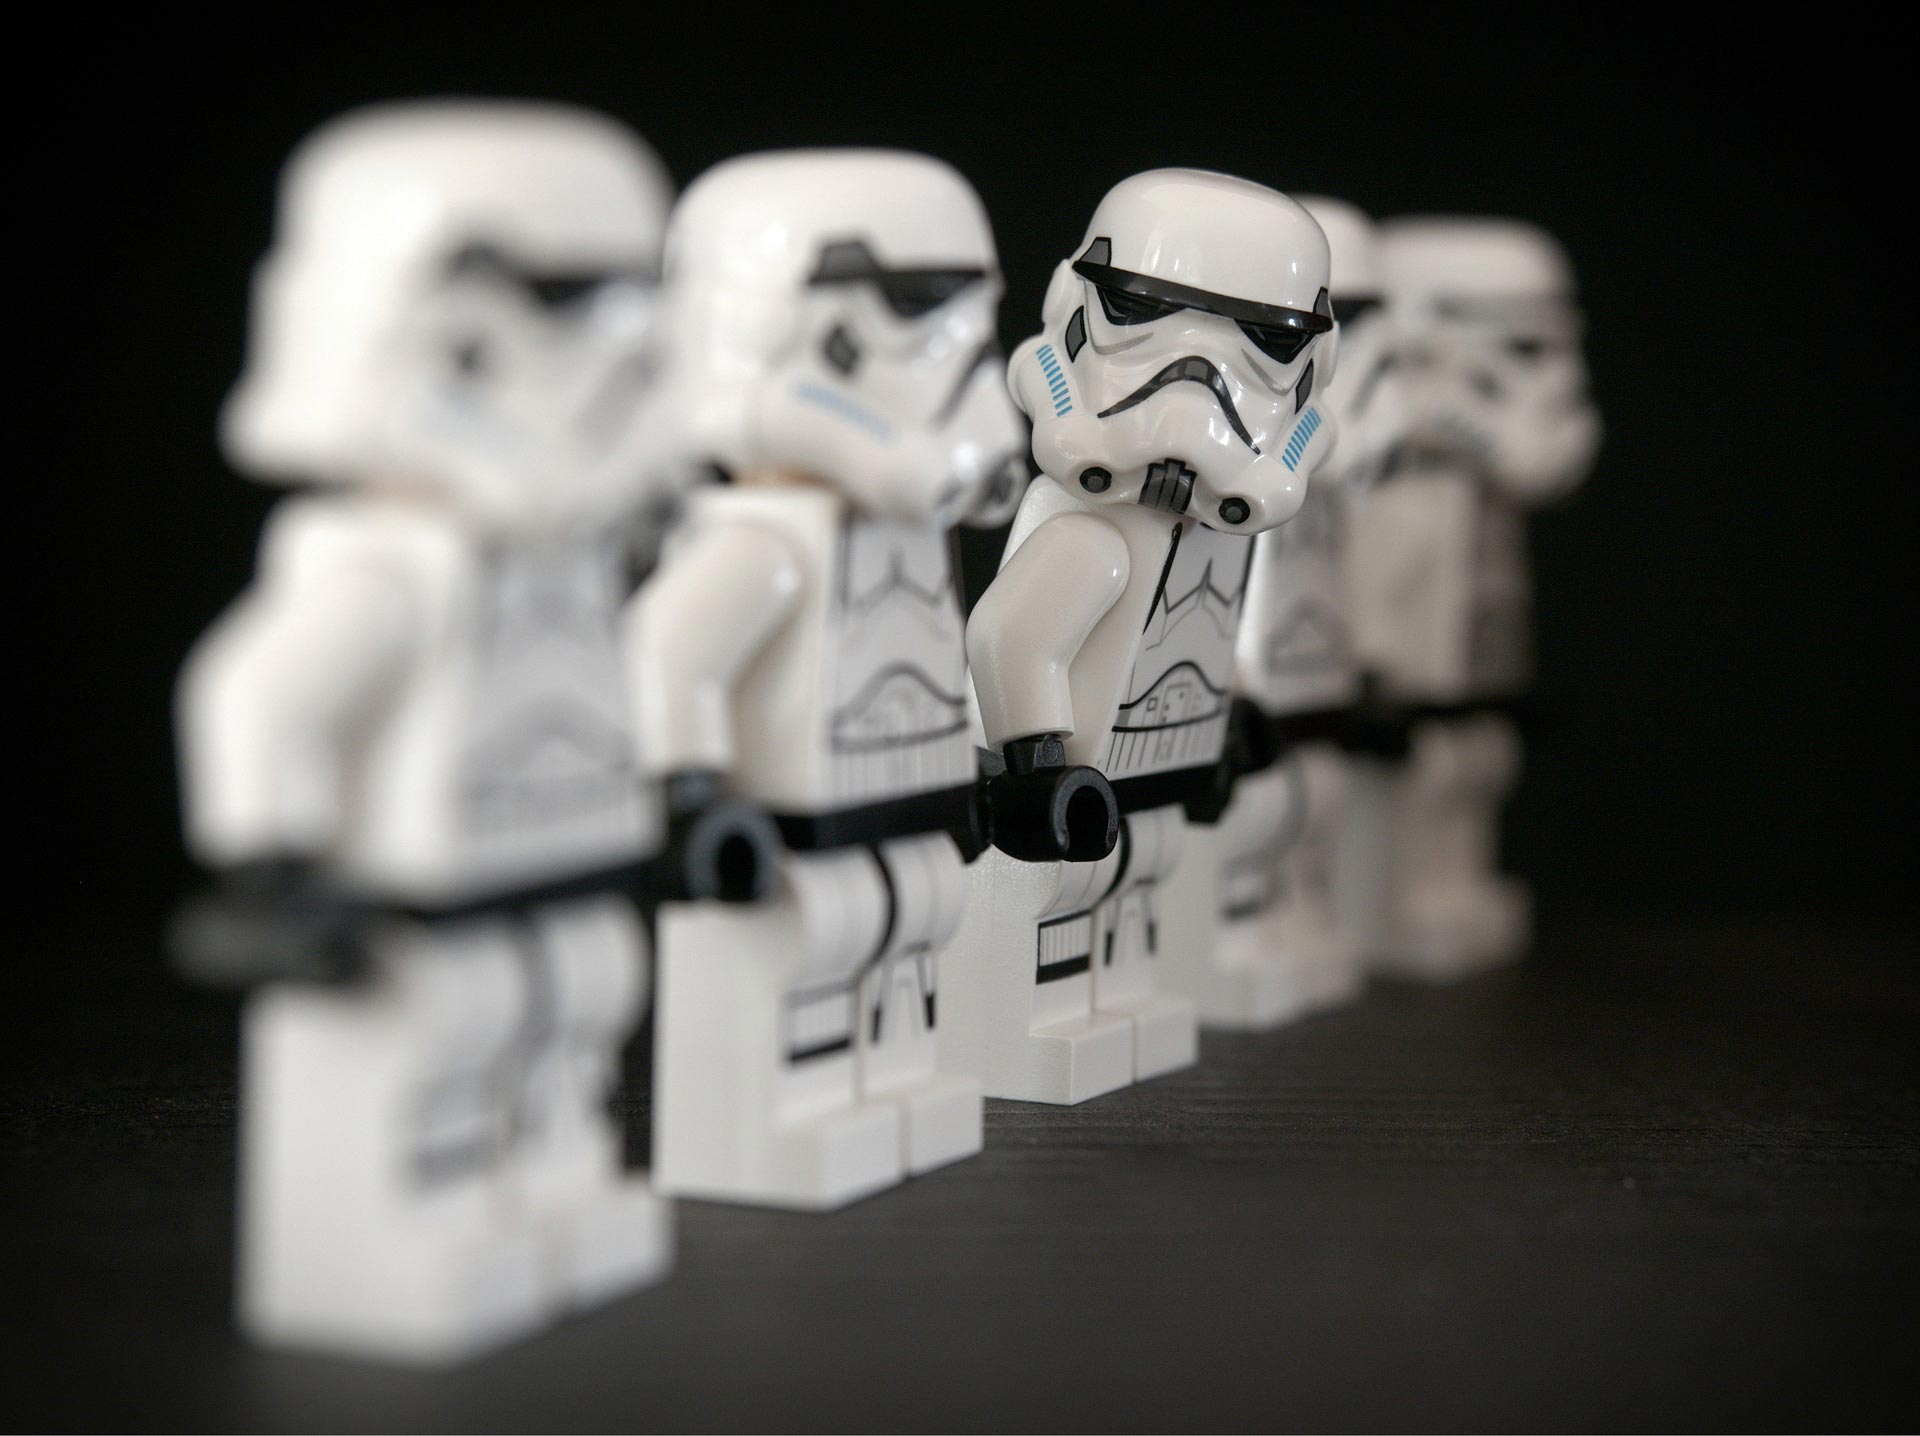 Row of storm trooper toys